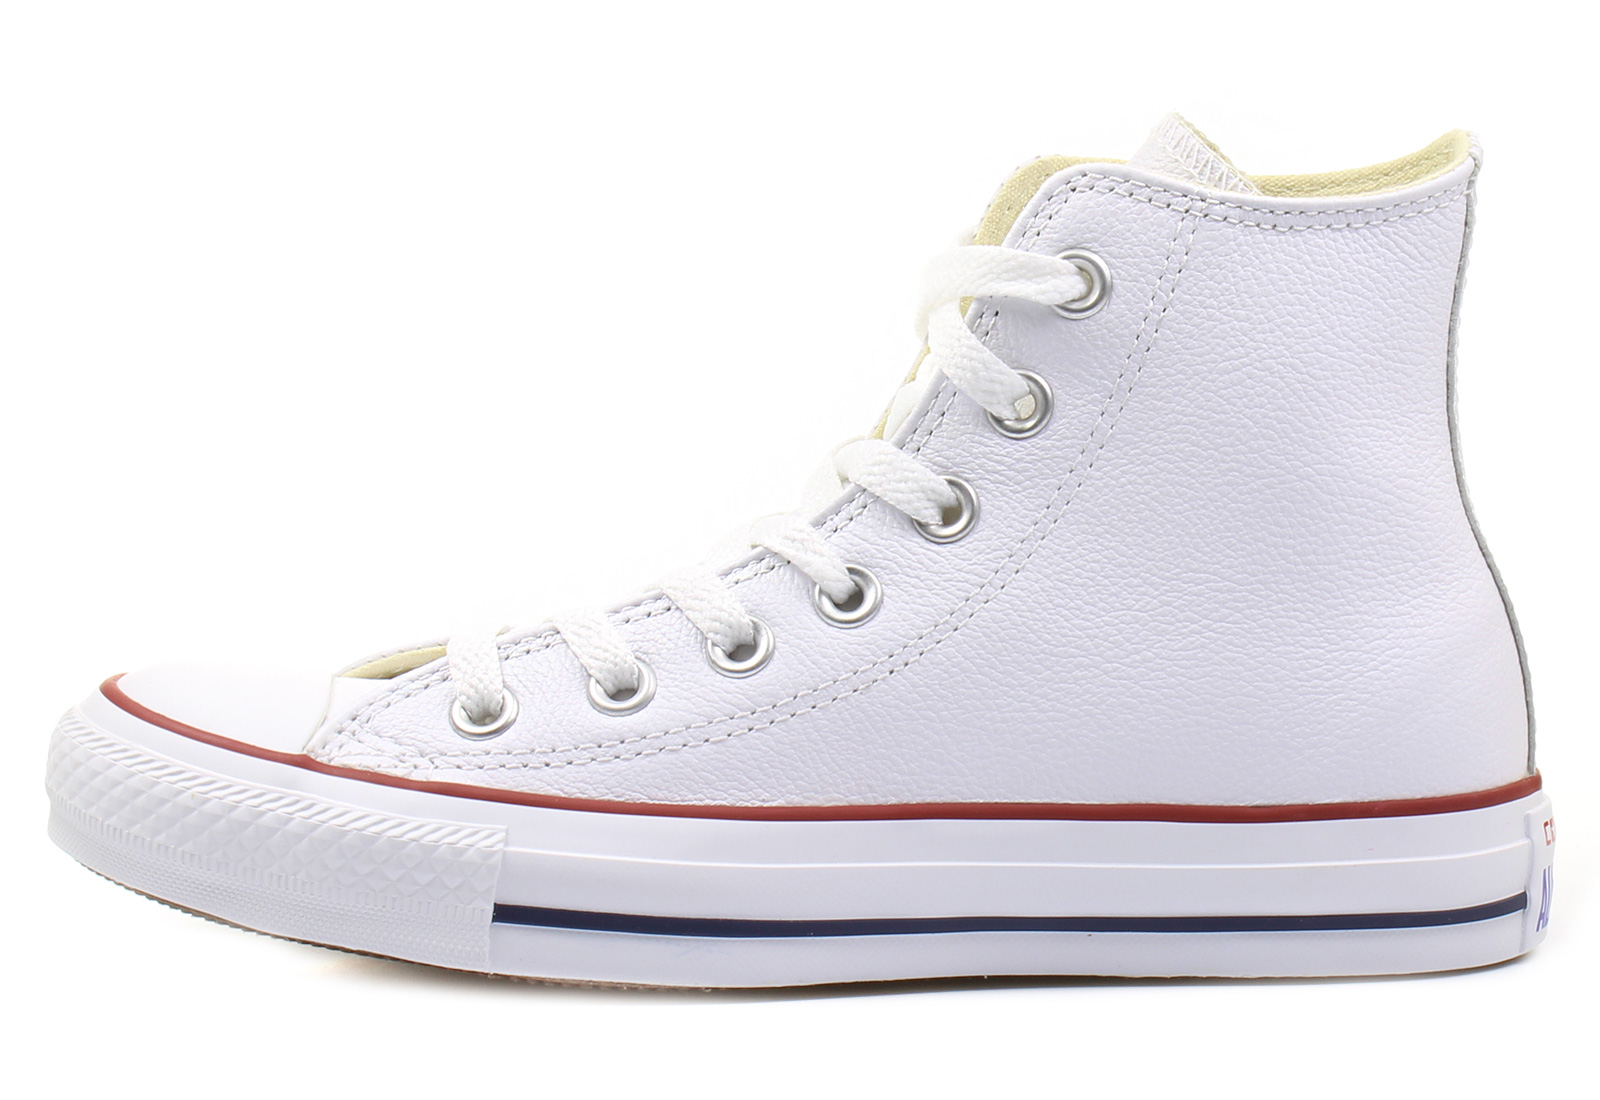 fe61902a7f5 Converse Tornacipő - Ct As Core Leather Hi - 132169c - Office Shoes  Magyarország